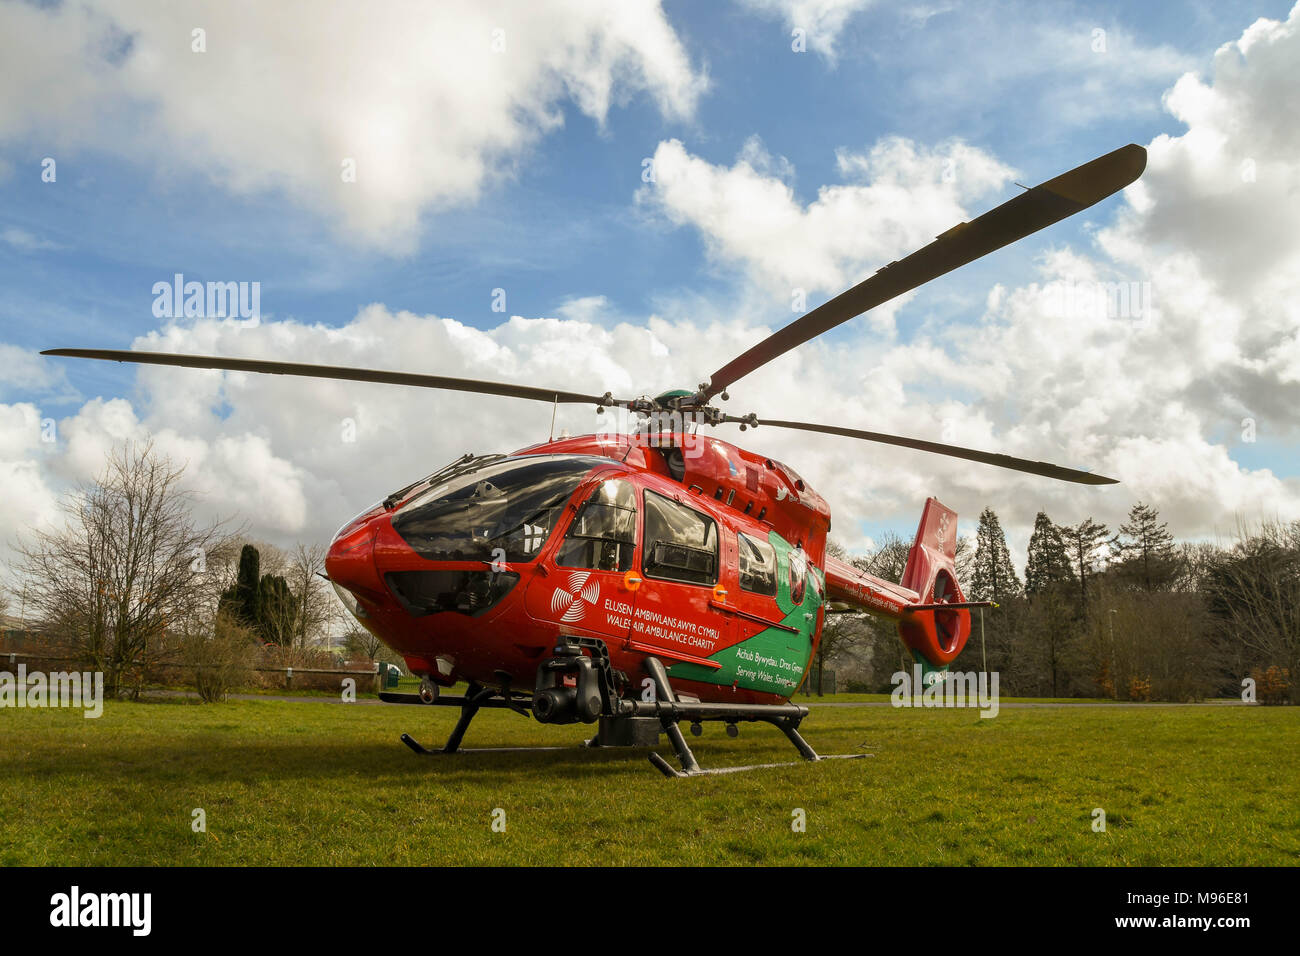 Wide angle view of an Airbus helicopter of the Wales Air Ambulance service on the ground during an emergency mission Stock Photo